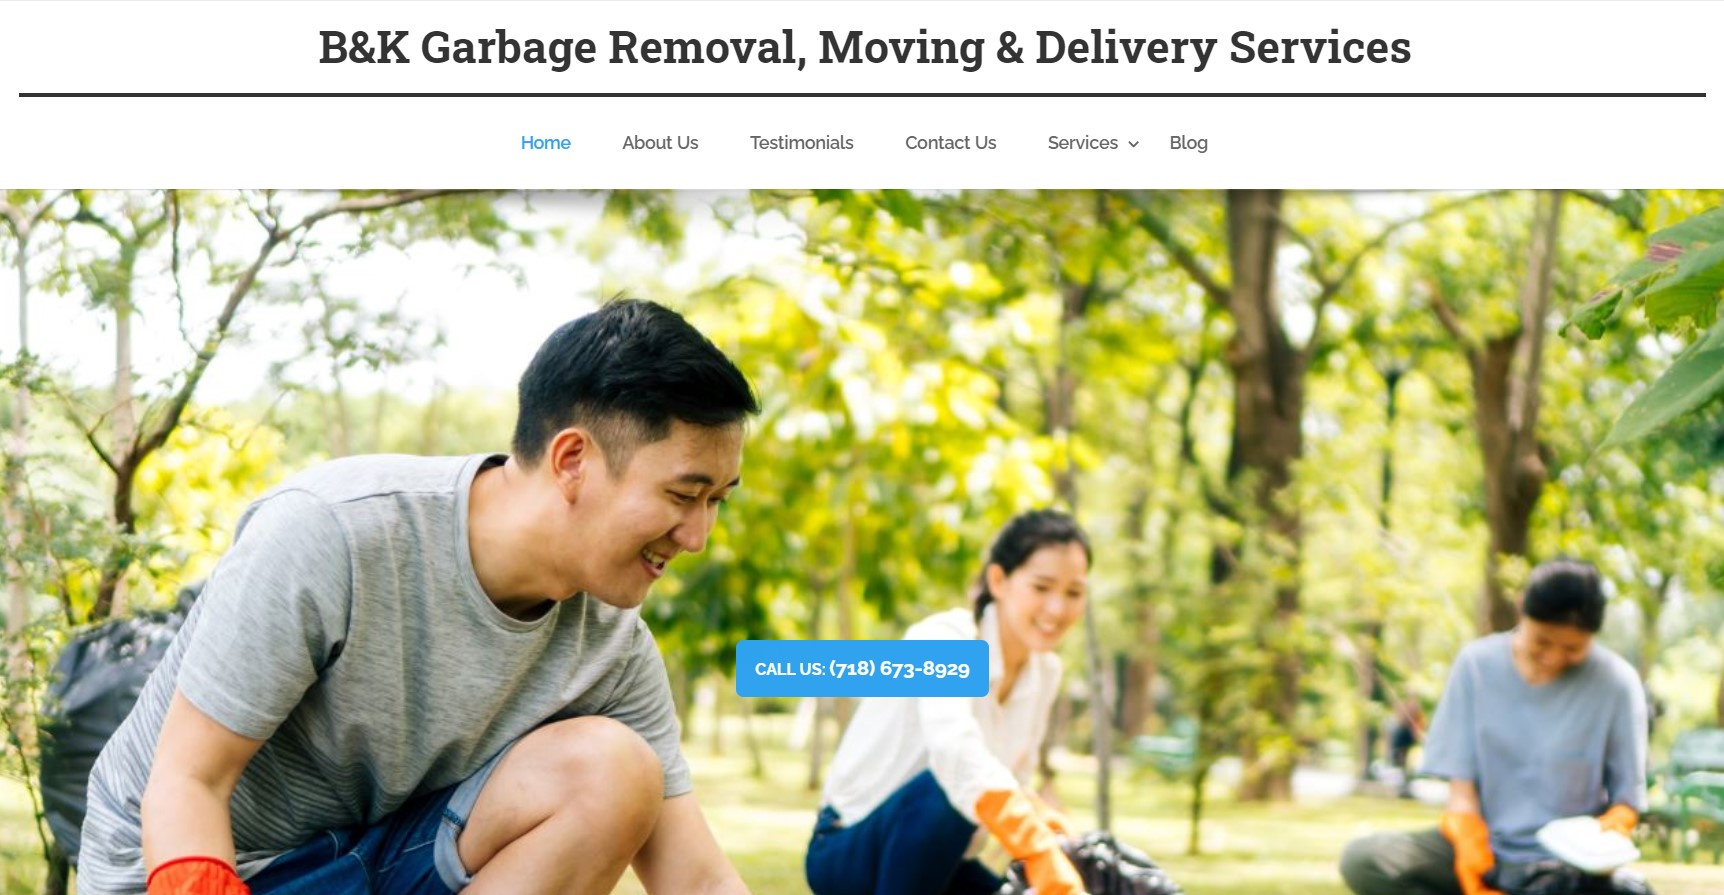 b&k rubbish removal in new york